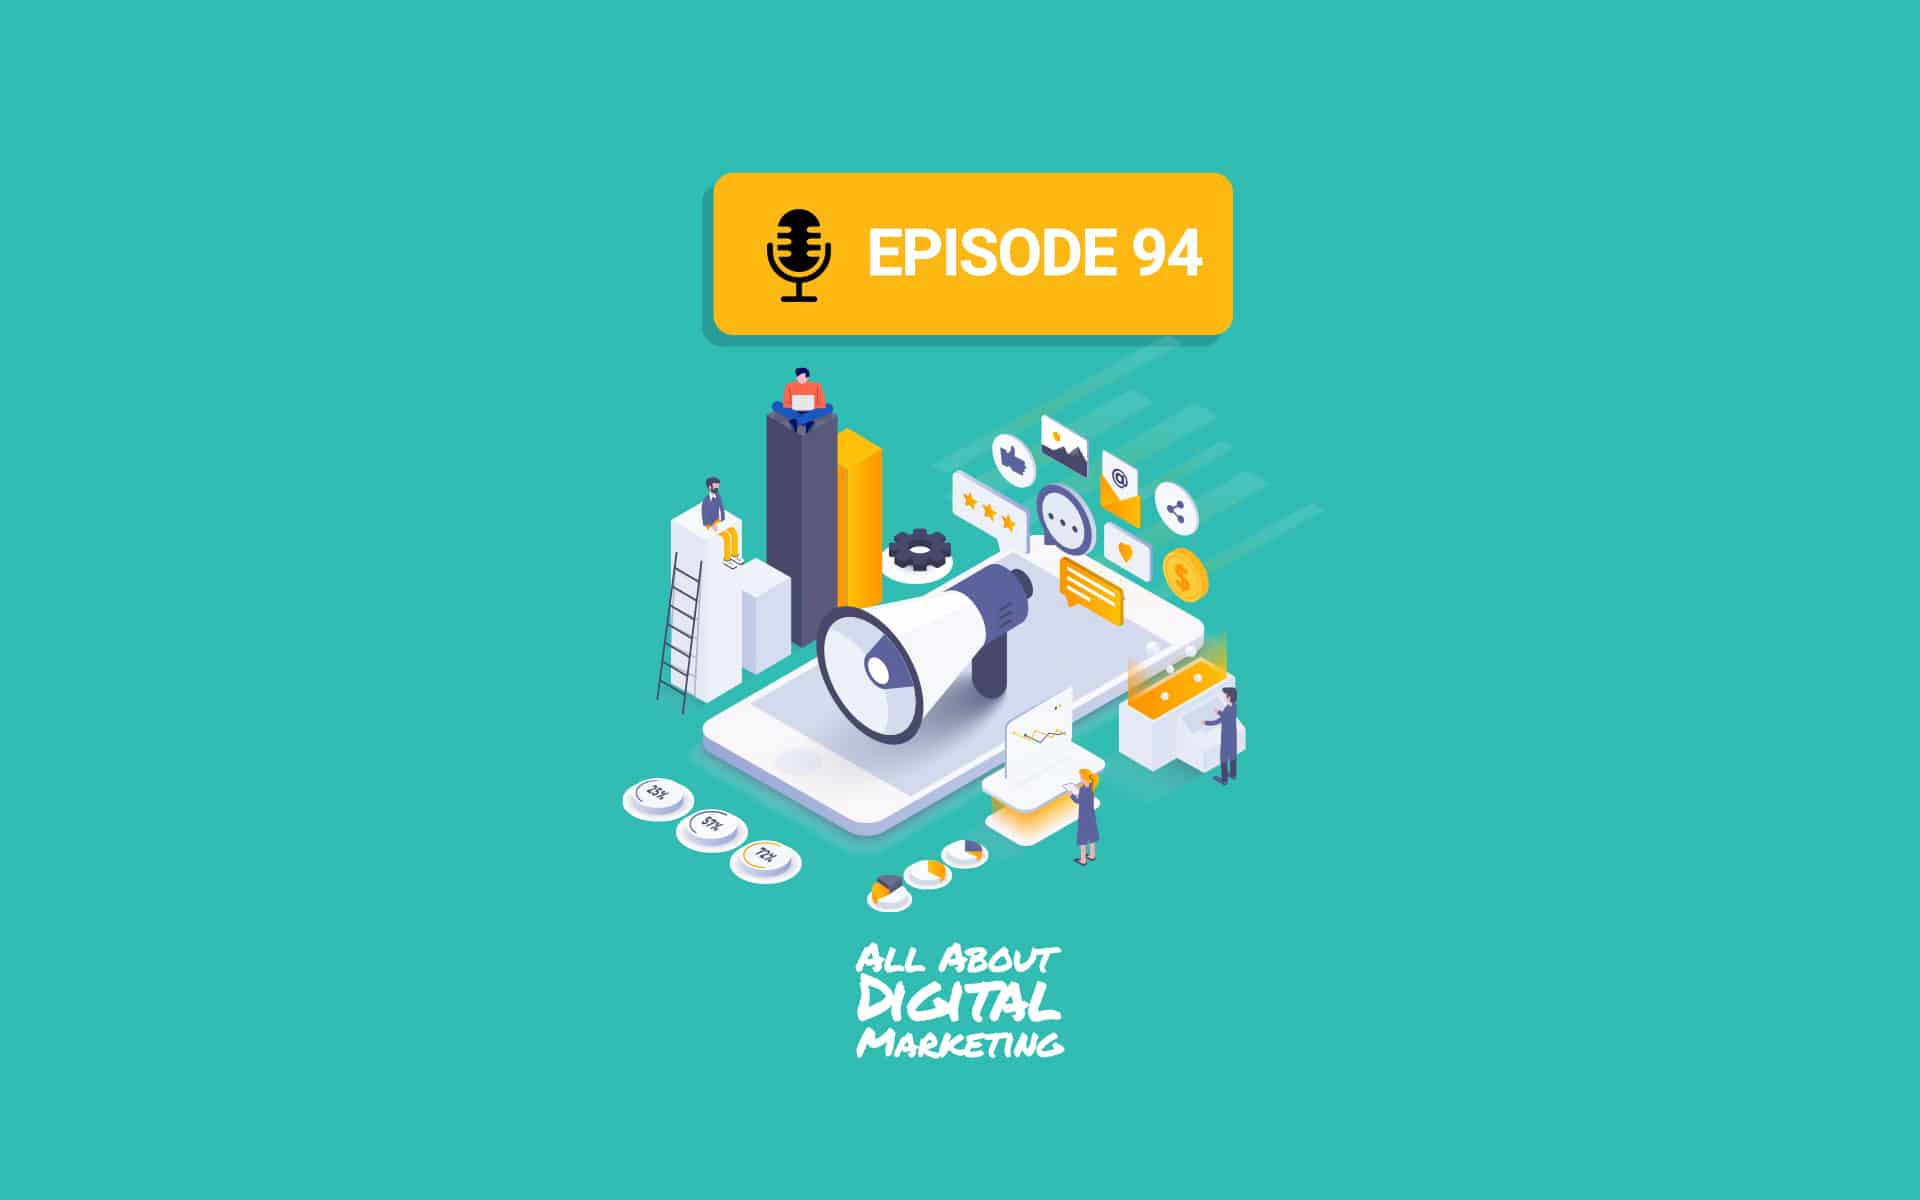 Ep.94 – Digital Marketing For Small Businesses With Barney Durrant